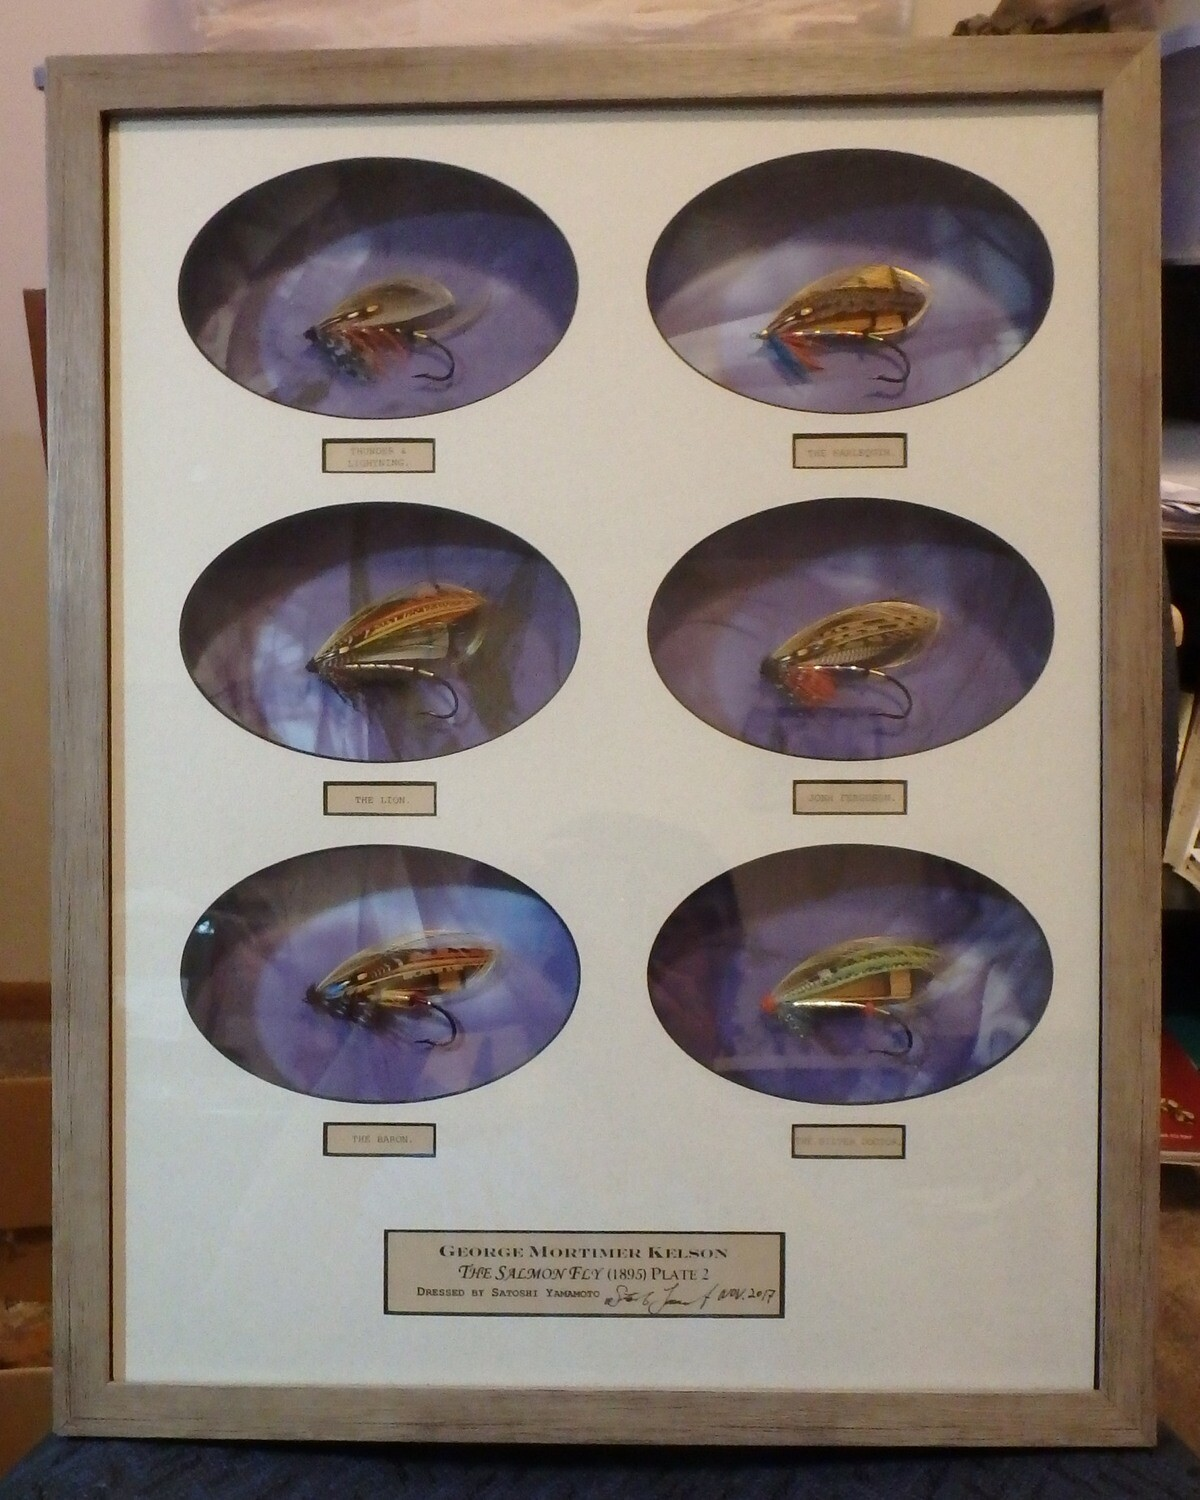 George Kelson's The Salmon Fly Plate 2 or Plate 3